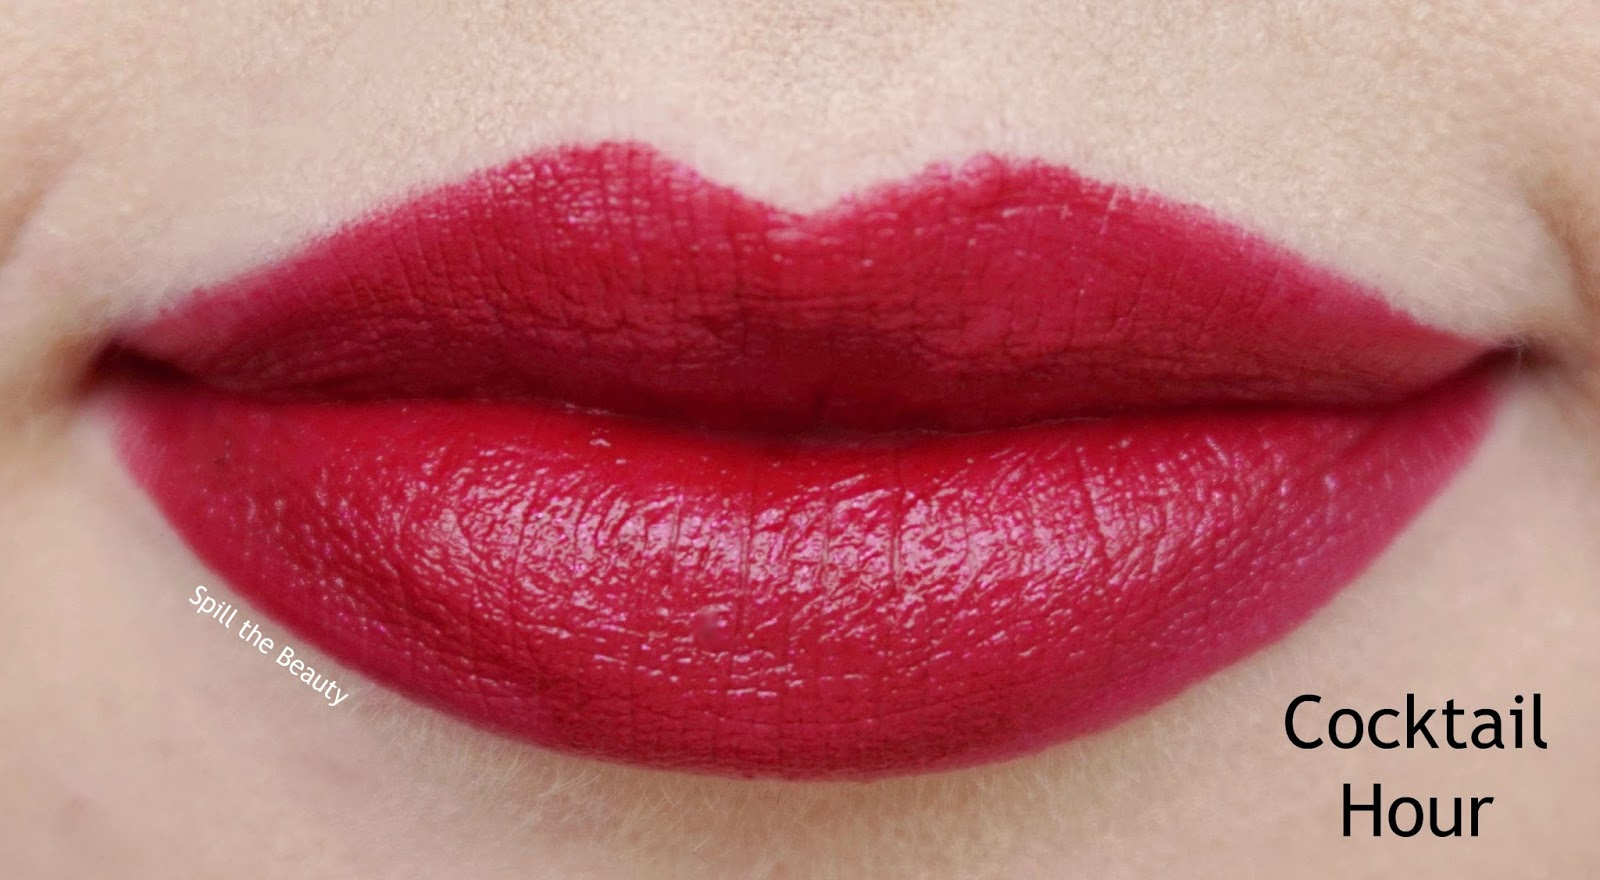 nyx pin up pout lipstick review swatchescocktail hour